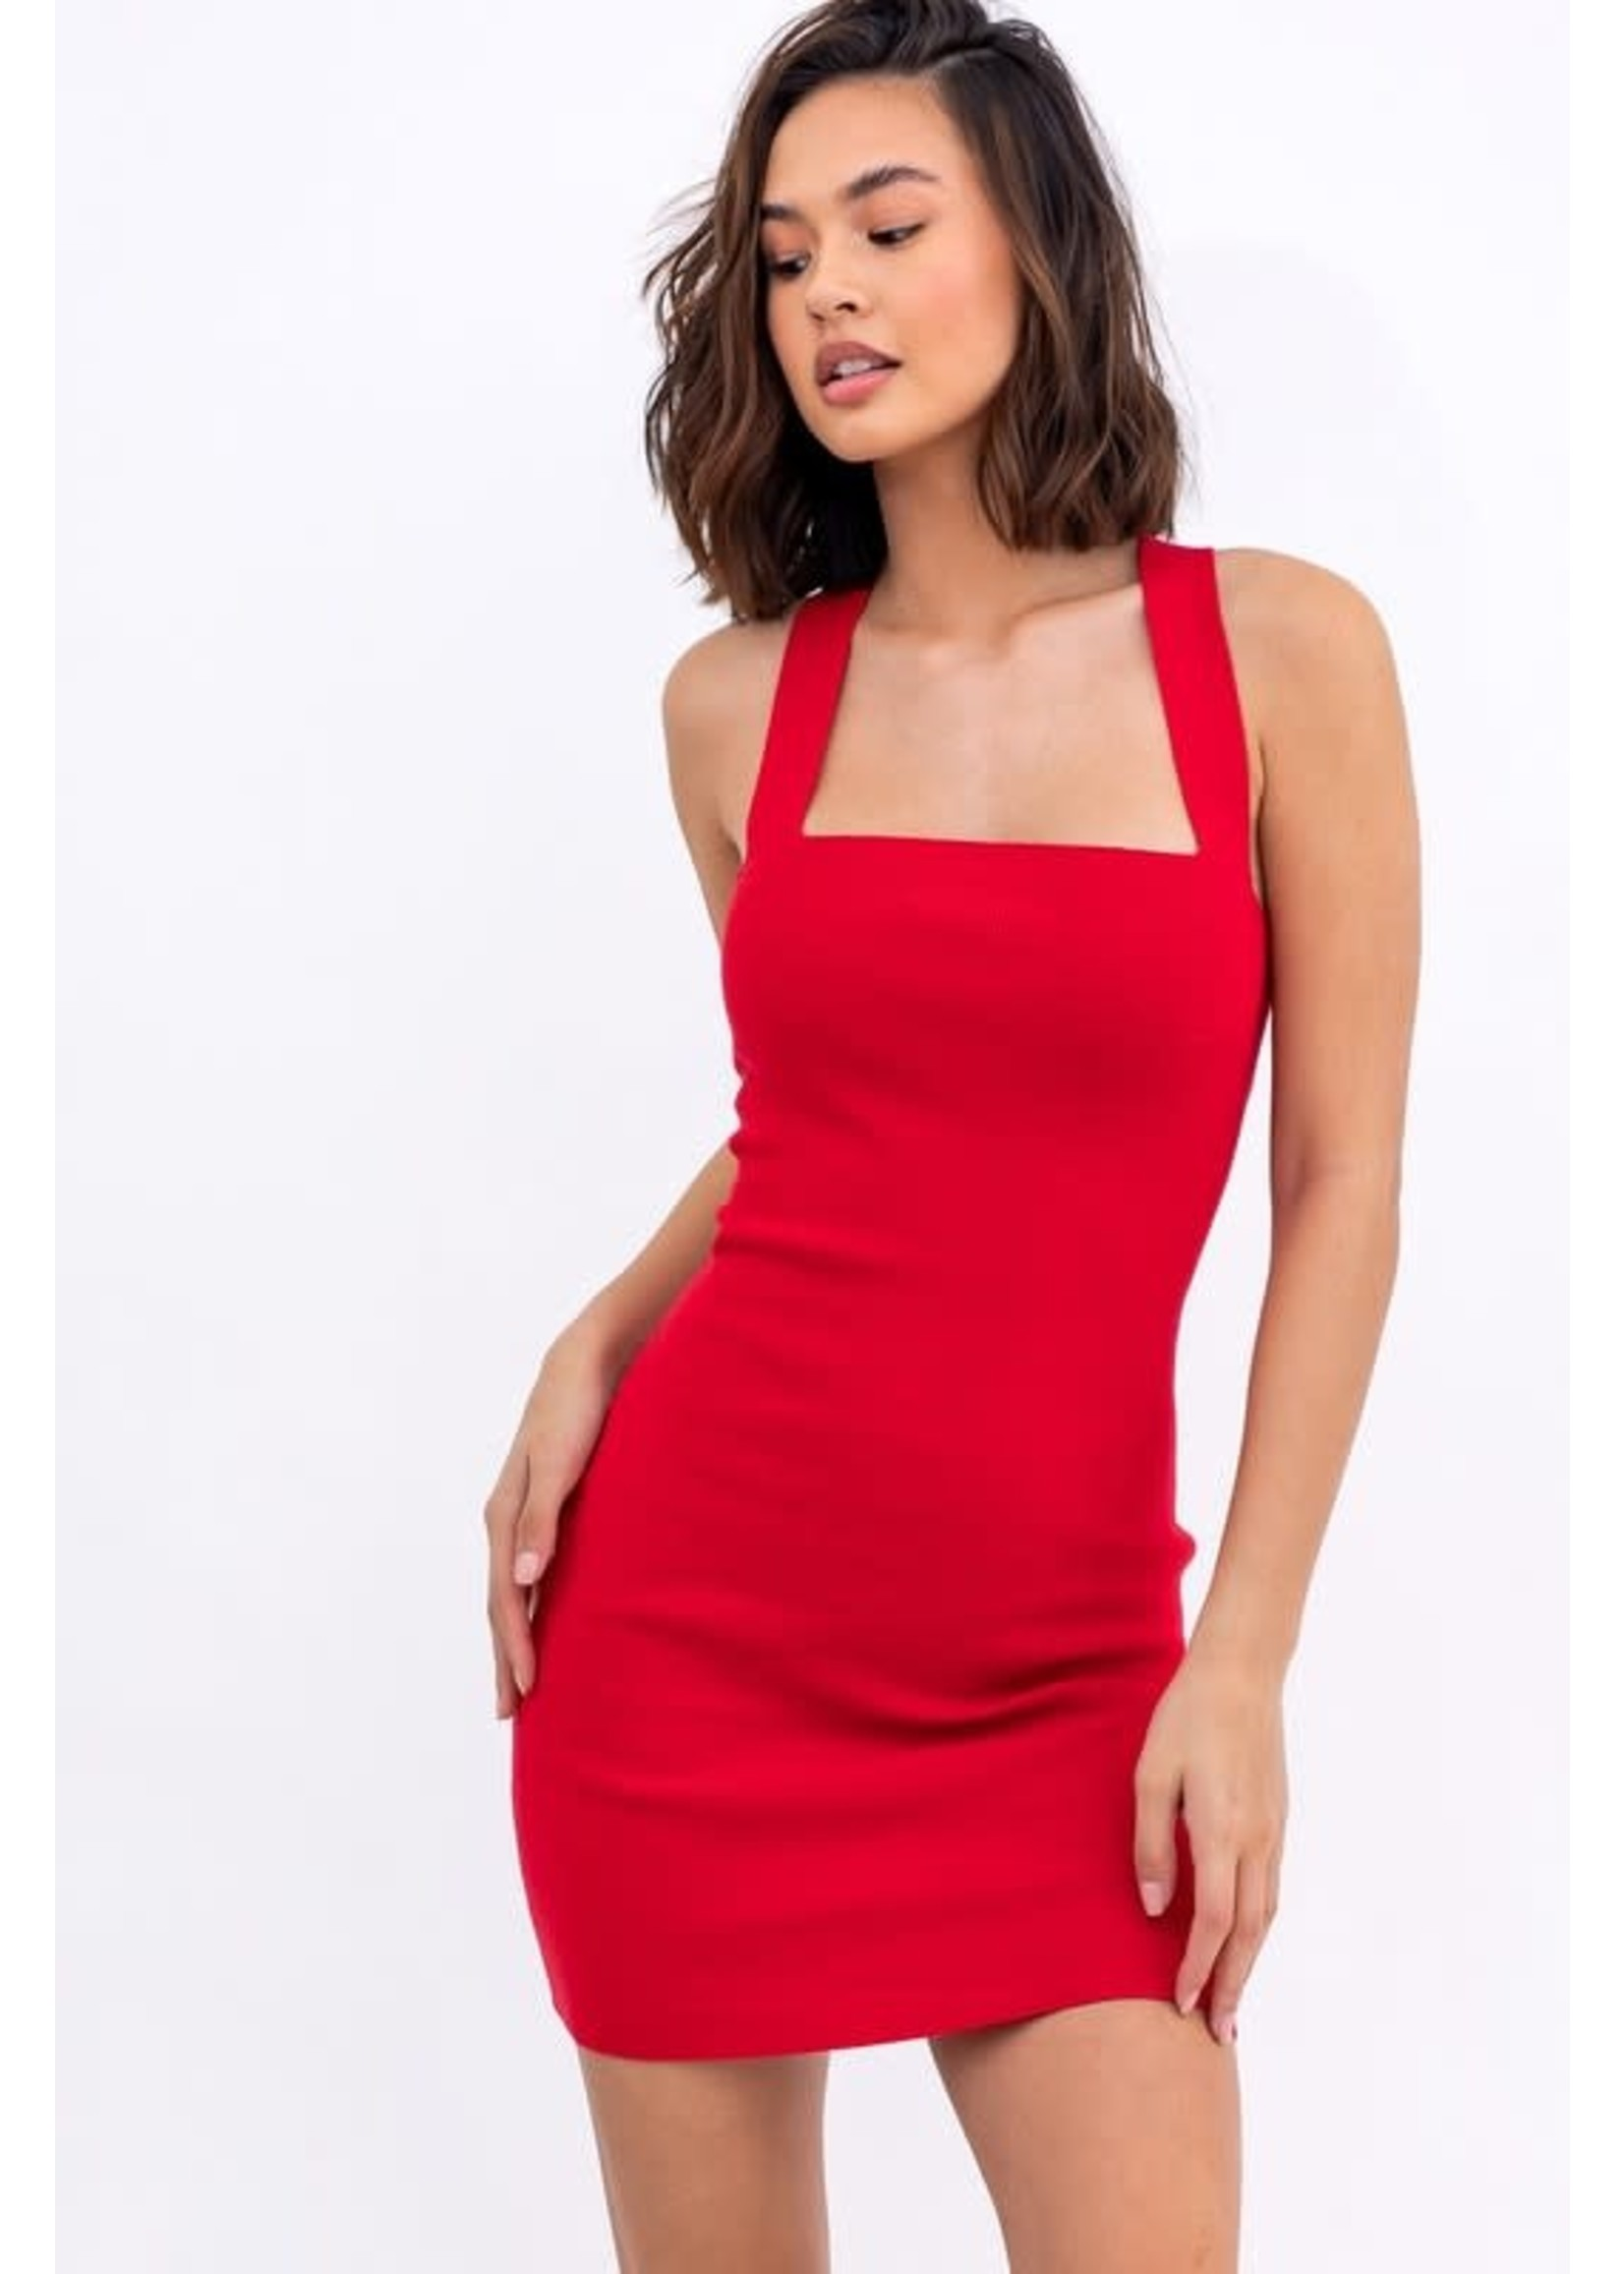 Le Lis Ribbed Knit Dress with Criss-Cross Back - MWD3642